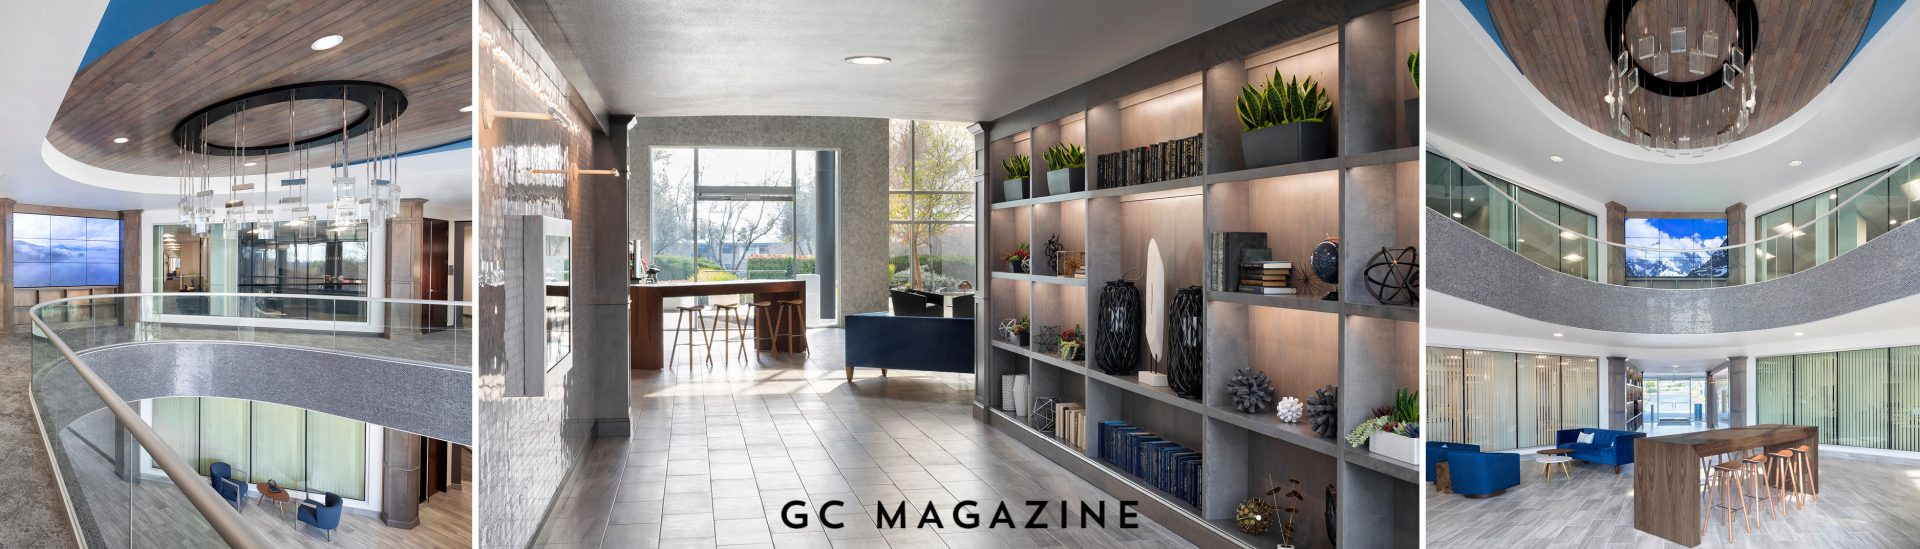 """GC Magazine Names Studio W Architects in """"The 13 Best Commercial Architects in Milpitas, CA"""" Feature"""